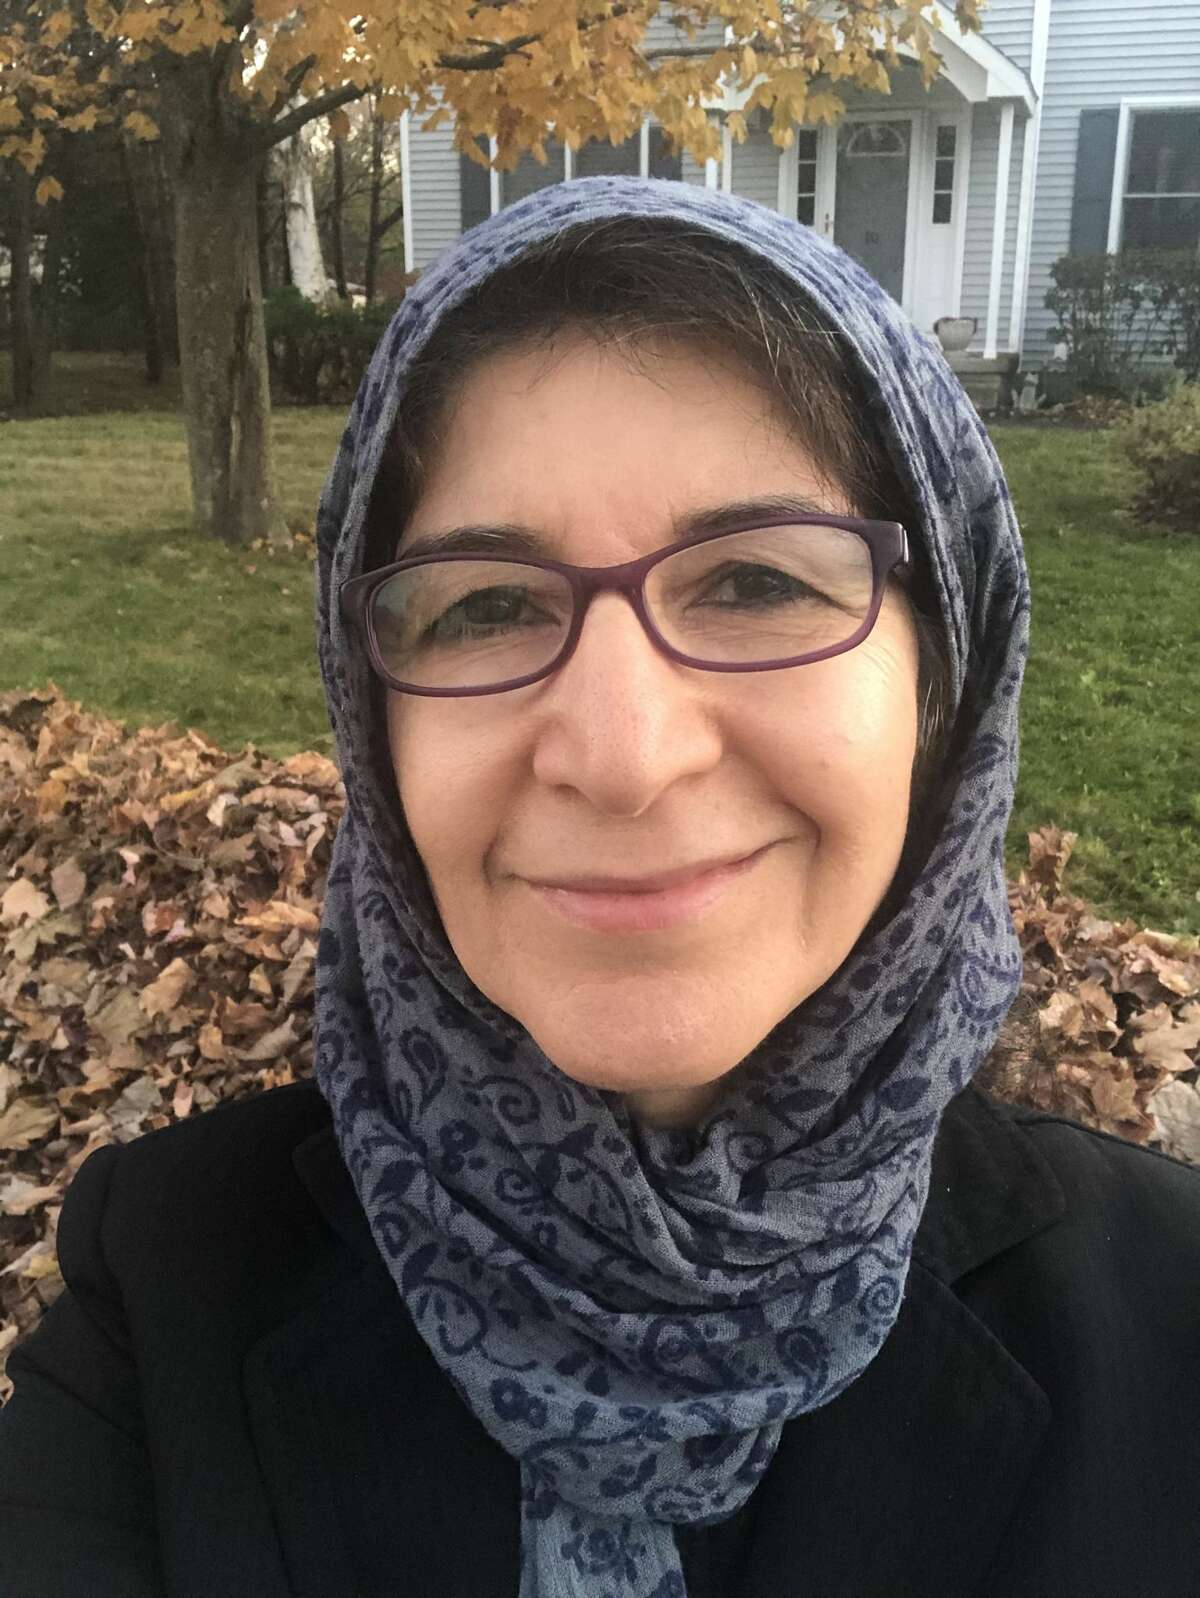 Ilham Almahamid outside of her Slingerlands home.